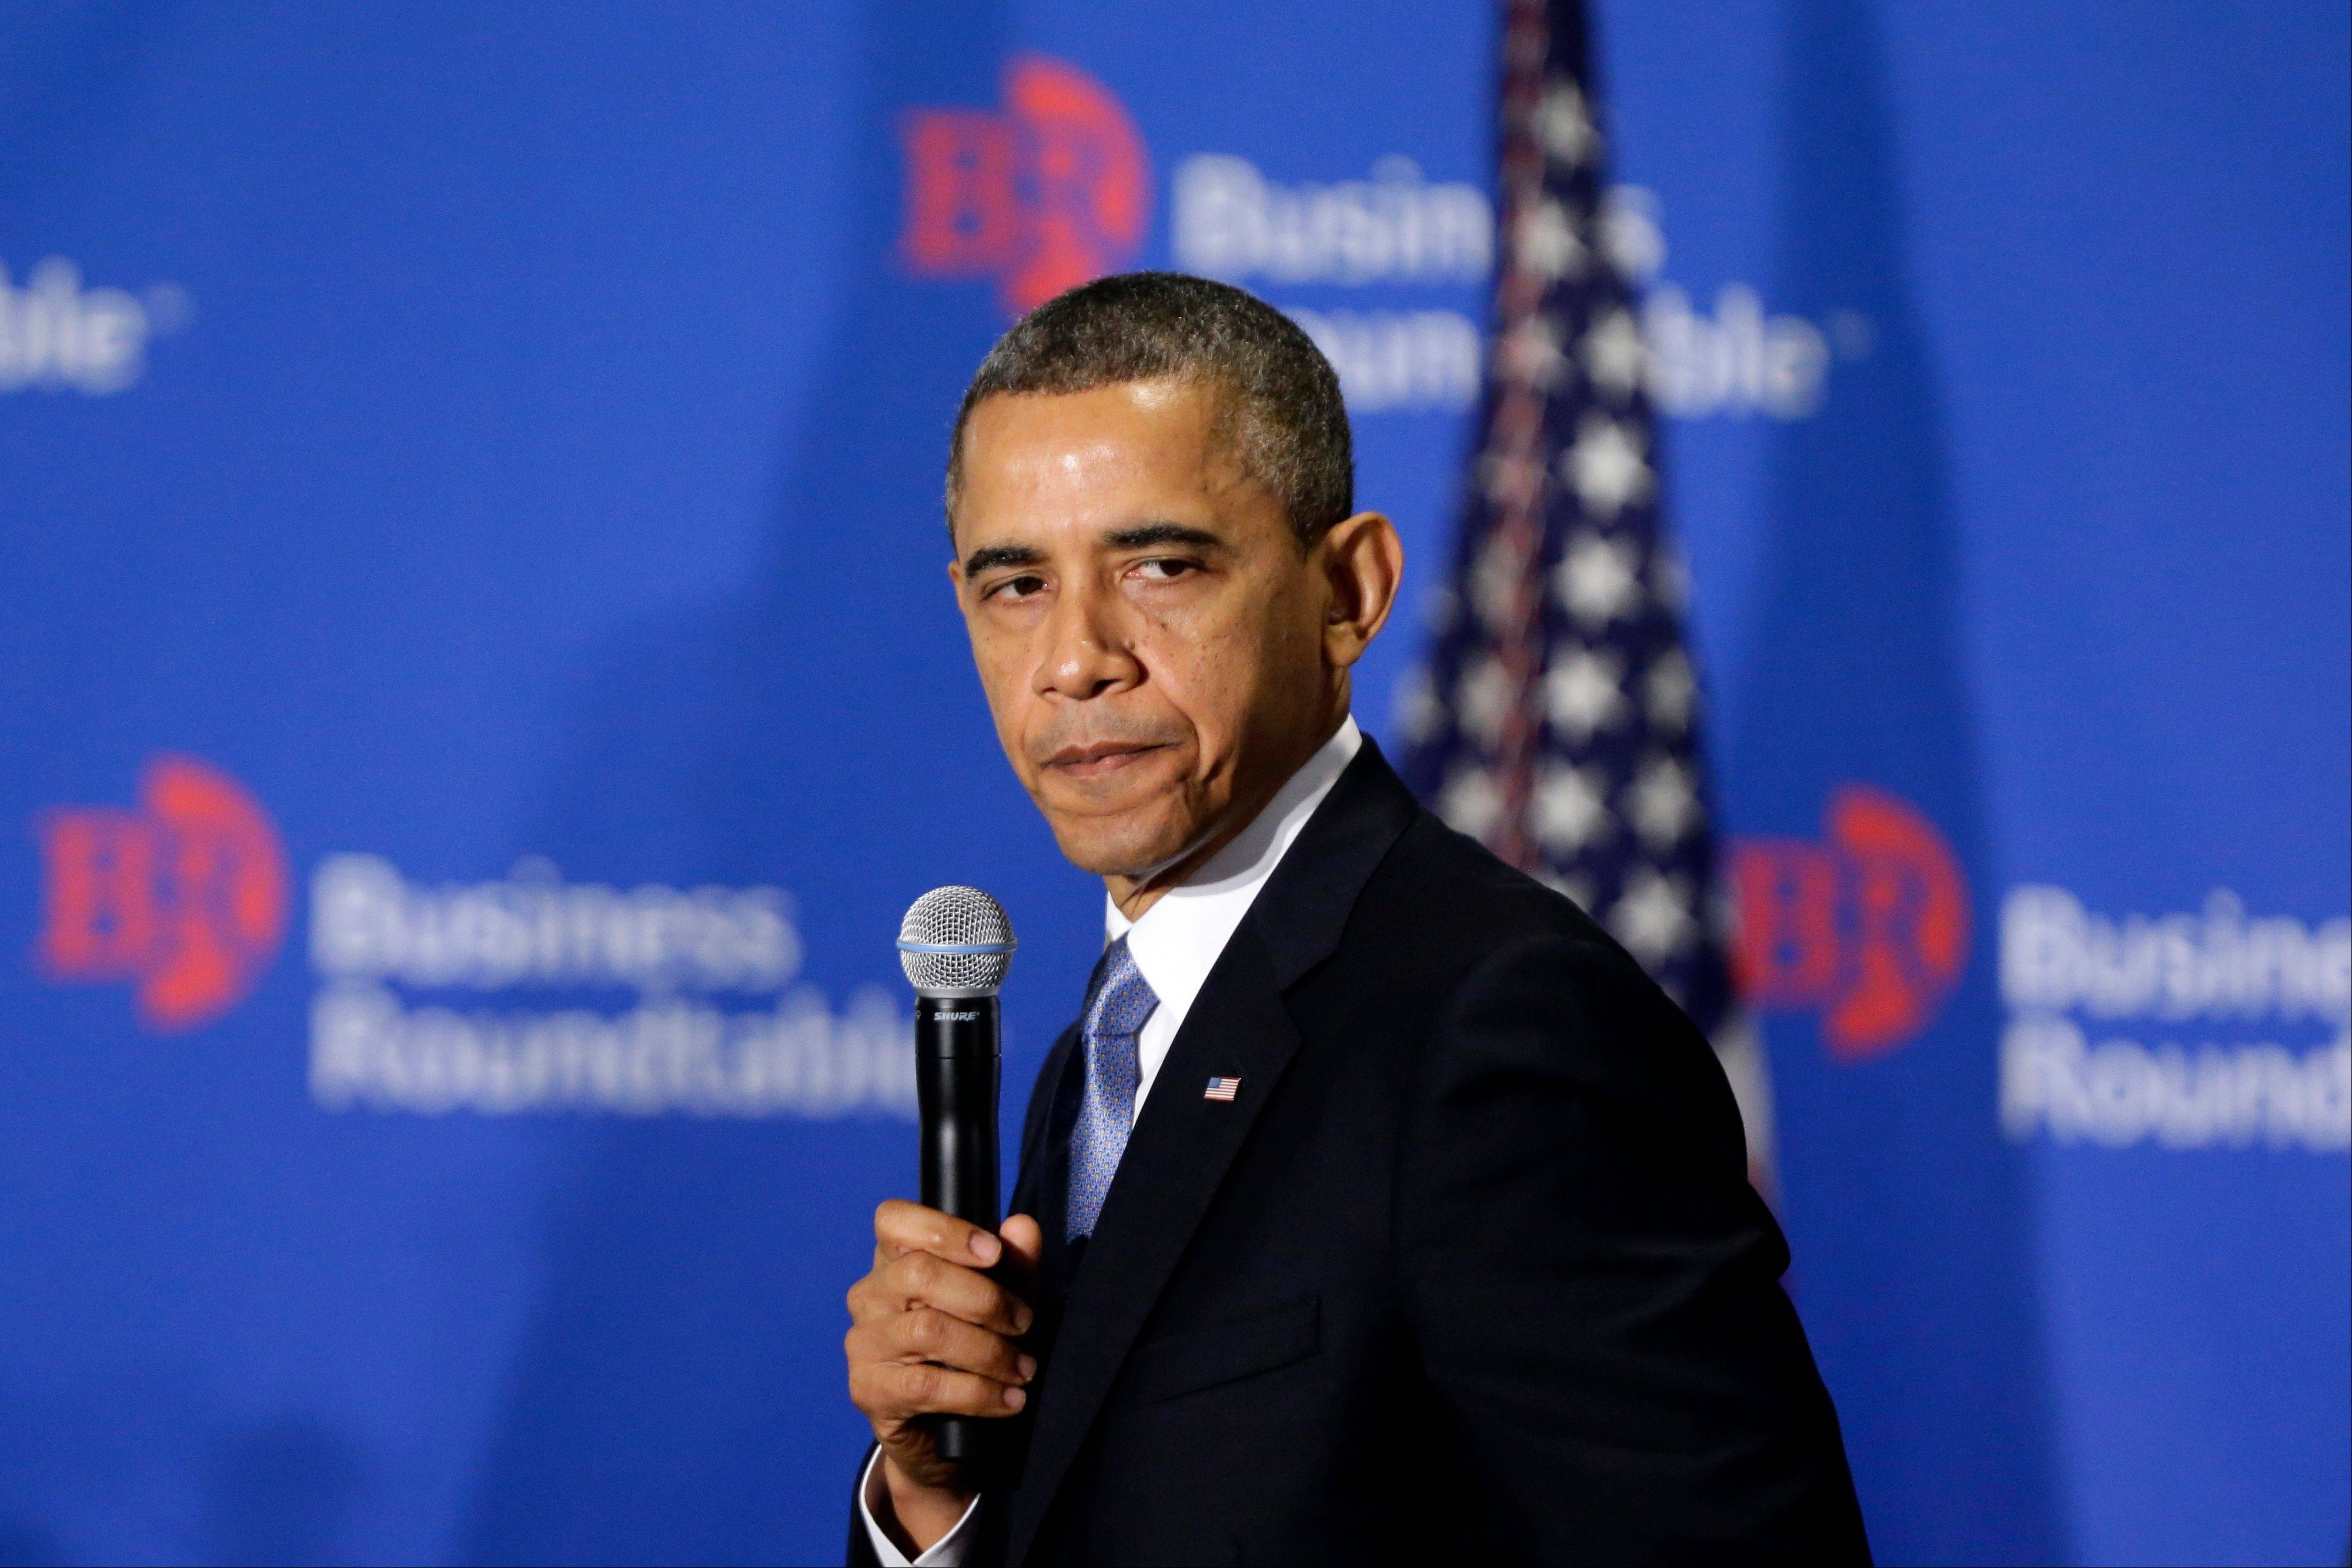 "President Barack Obama pauses as he speaks about the fiscal cliff at the Business Roundtable, an association of chief executive officers, in Washington, Wednesday, Dec. 5, 2012. The president warned Republicans not to create another fight over the nation's debt ceiling, telling business leaders it's ""not a game that I will play."""